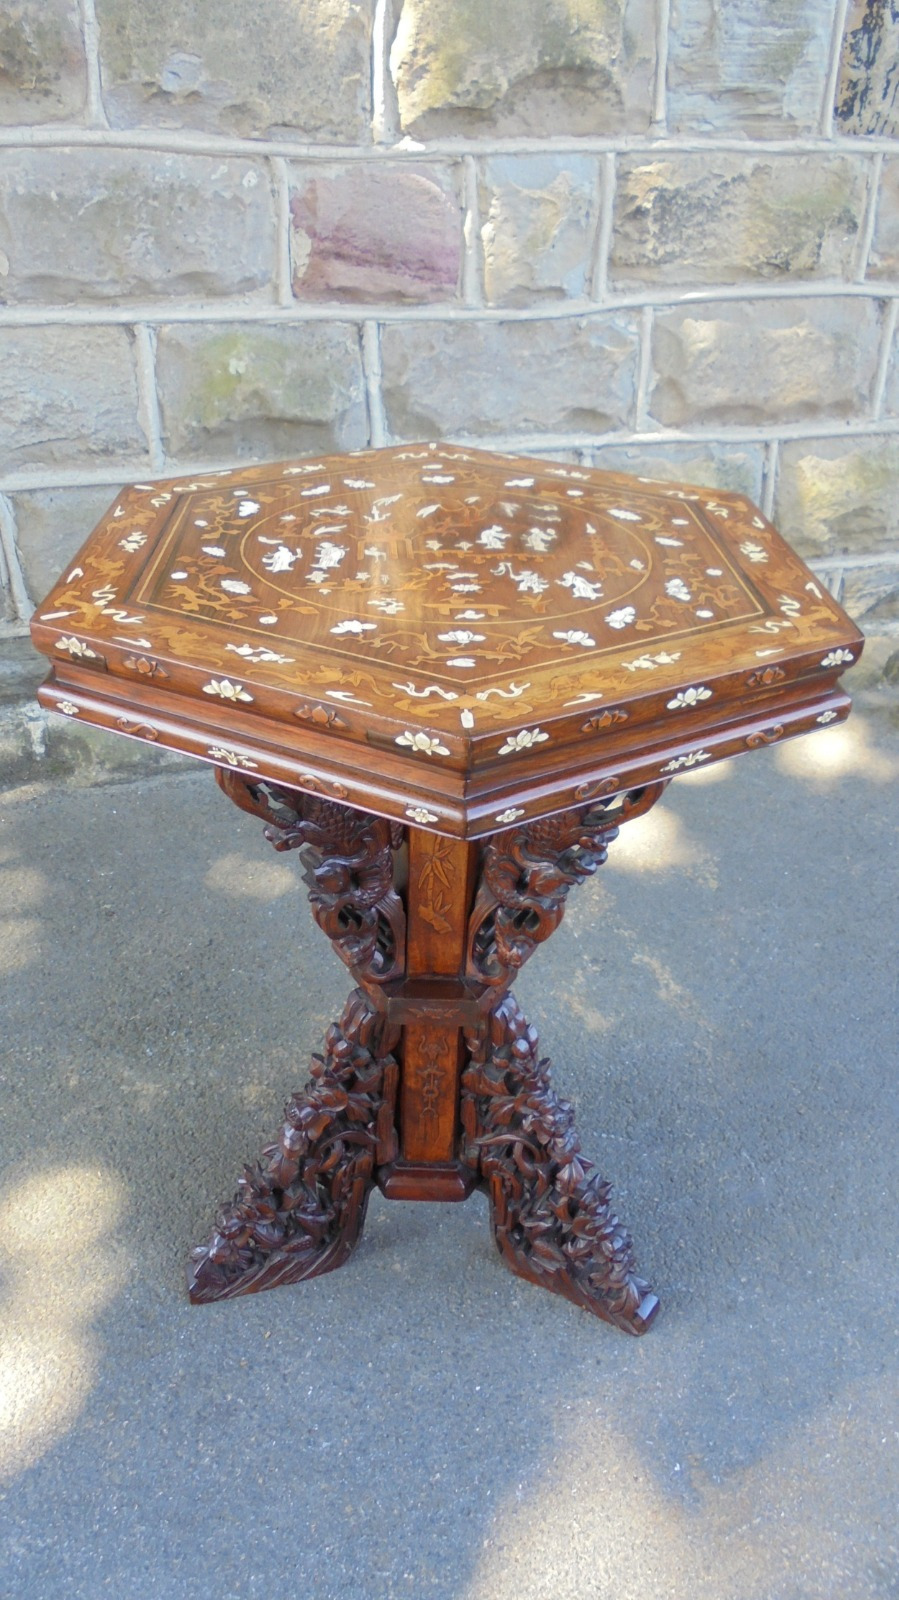 Antique Inlaid Wood Furniture New Unusual Antique oriental Chinese Inlaid Table C 1890 Wom